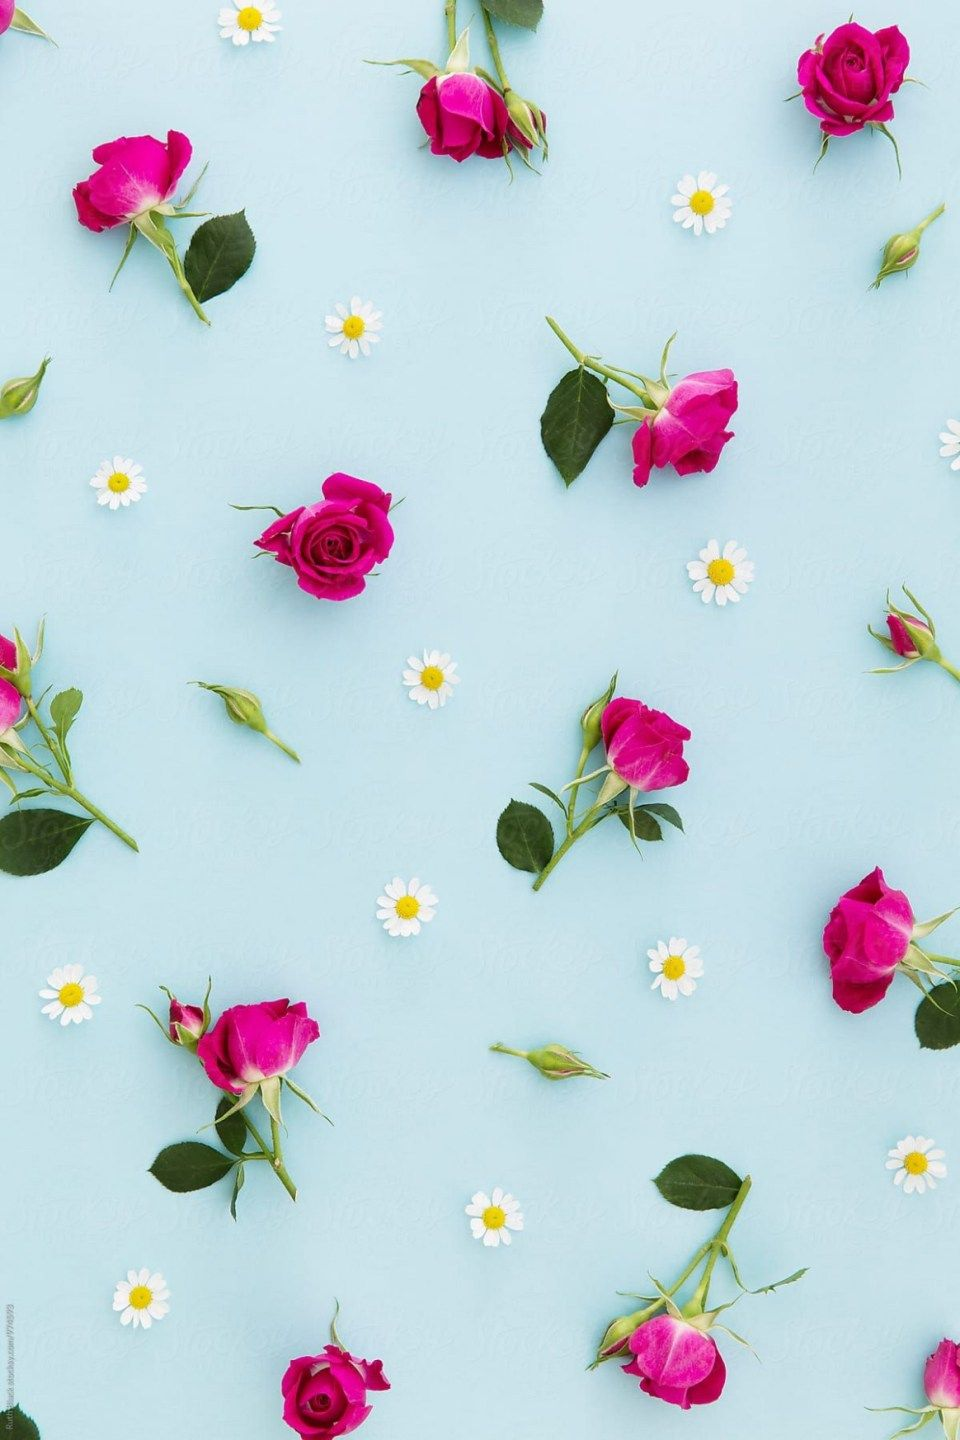 8 Doubts About Flower Background High Resolution You Should